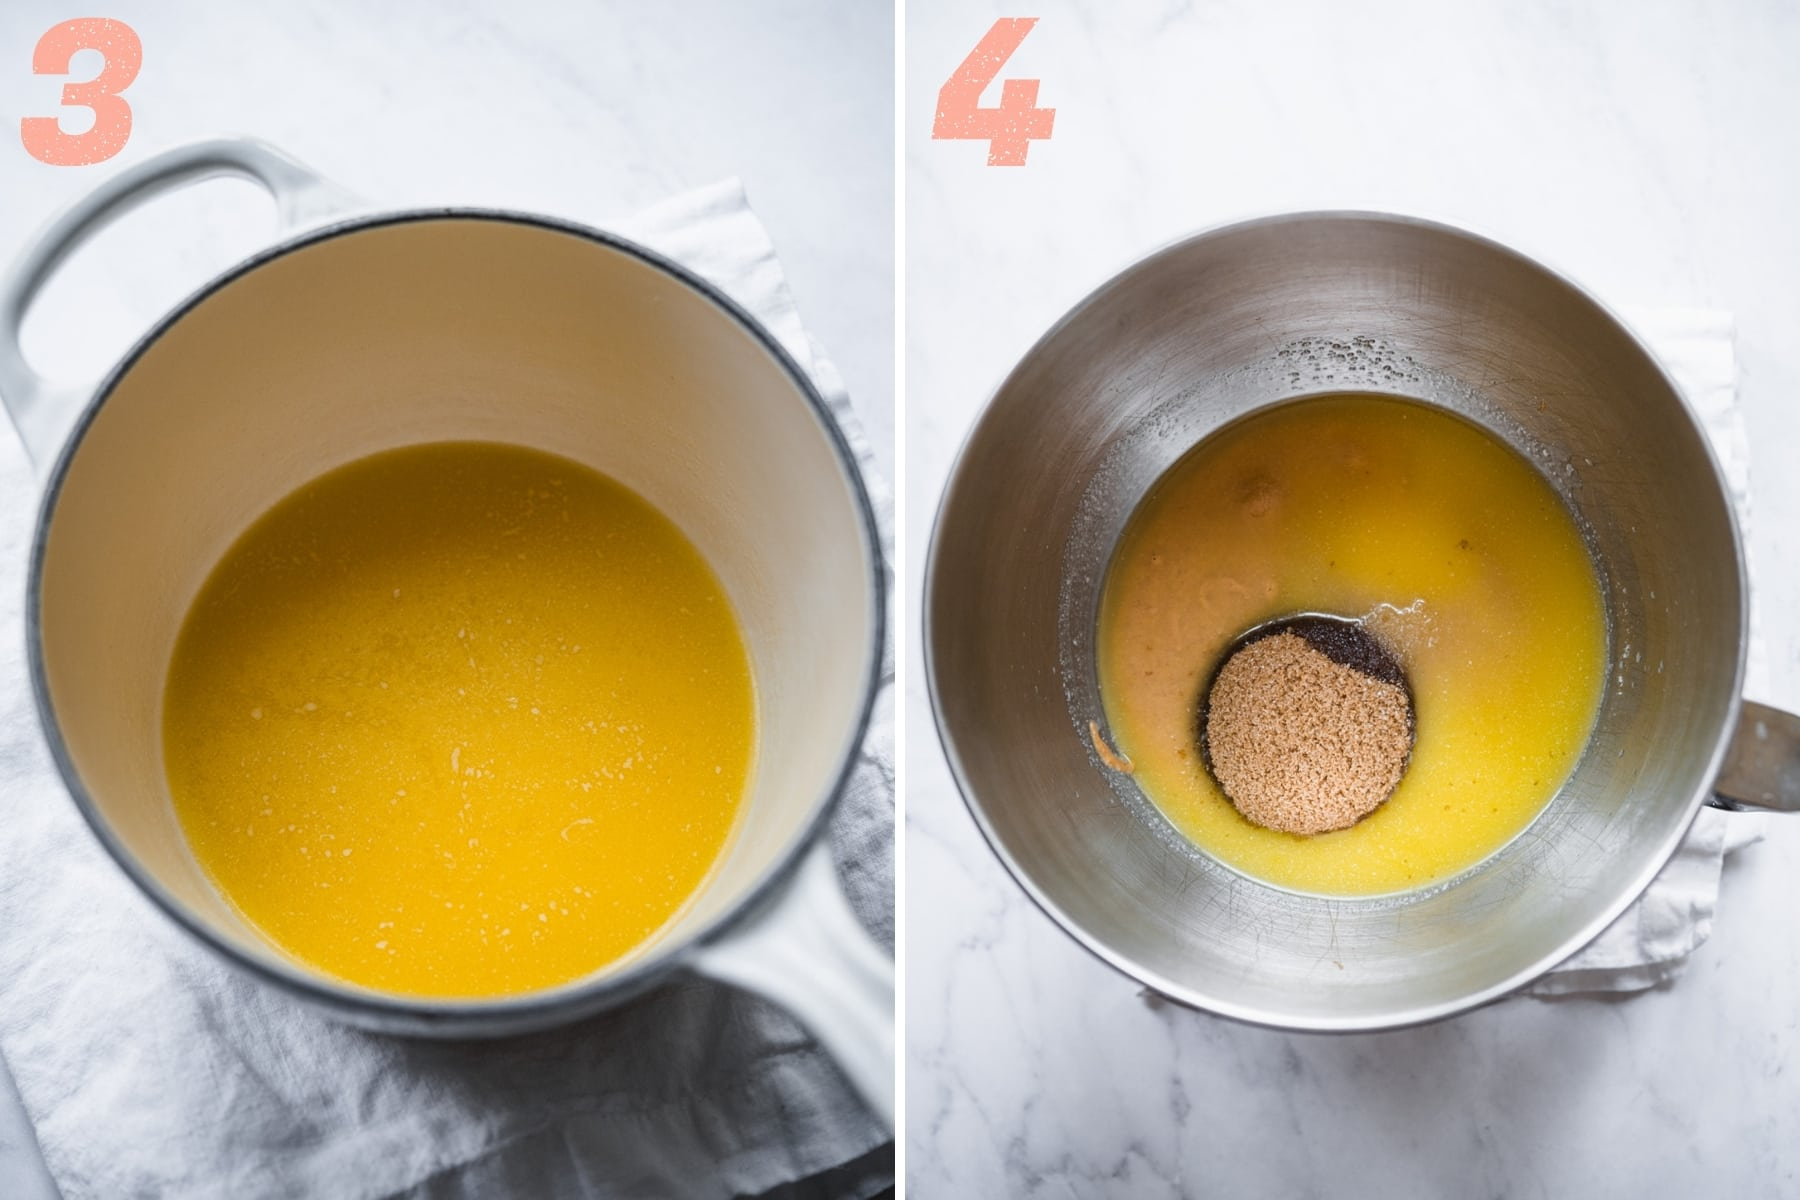 on the left: melted butter in a saucepan. on the right: melted butter, peanut butter and brown sugar in a stand mixer.